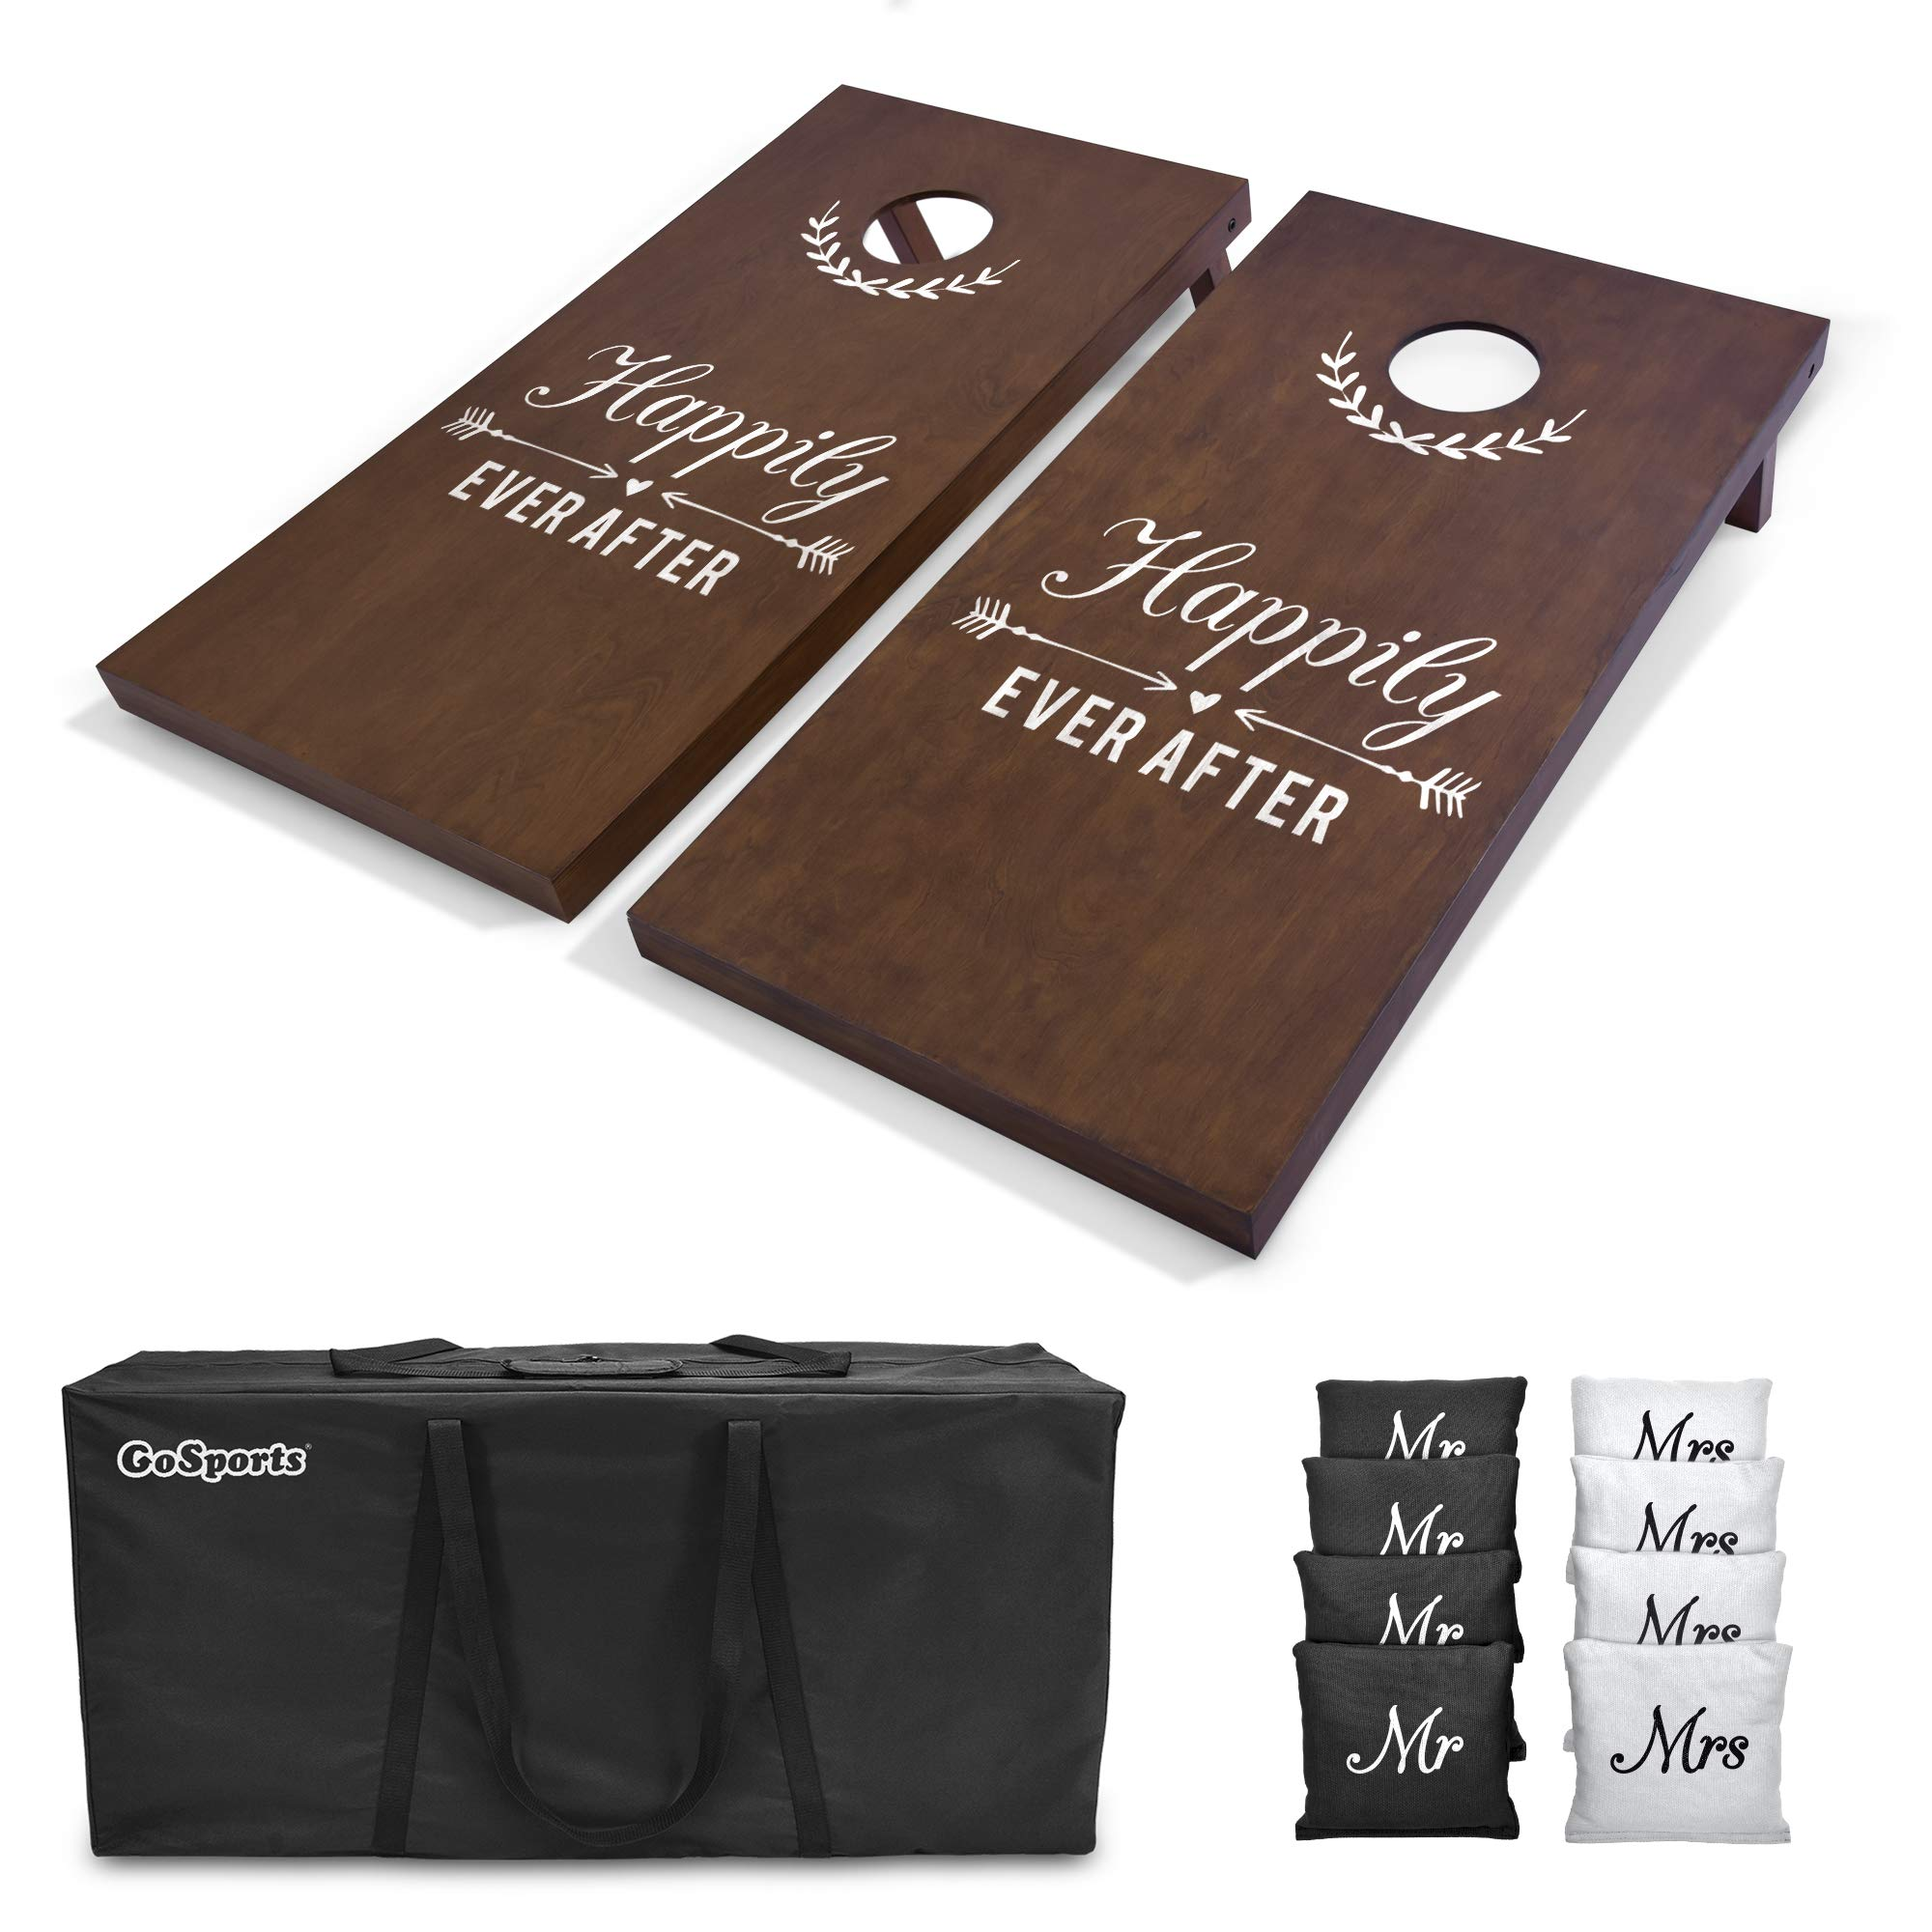 GoSports Wedding Cornhole Set | Regulation 4'x2' Size  Solid Stained Wood with Carrying Case and Bean Bags (Choose Your Colors) - Match The Wedding Theme! by GoSports